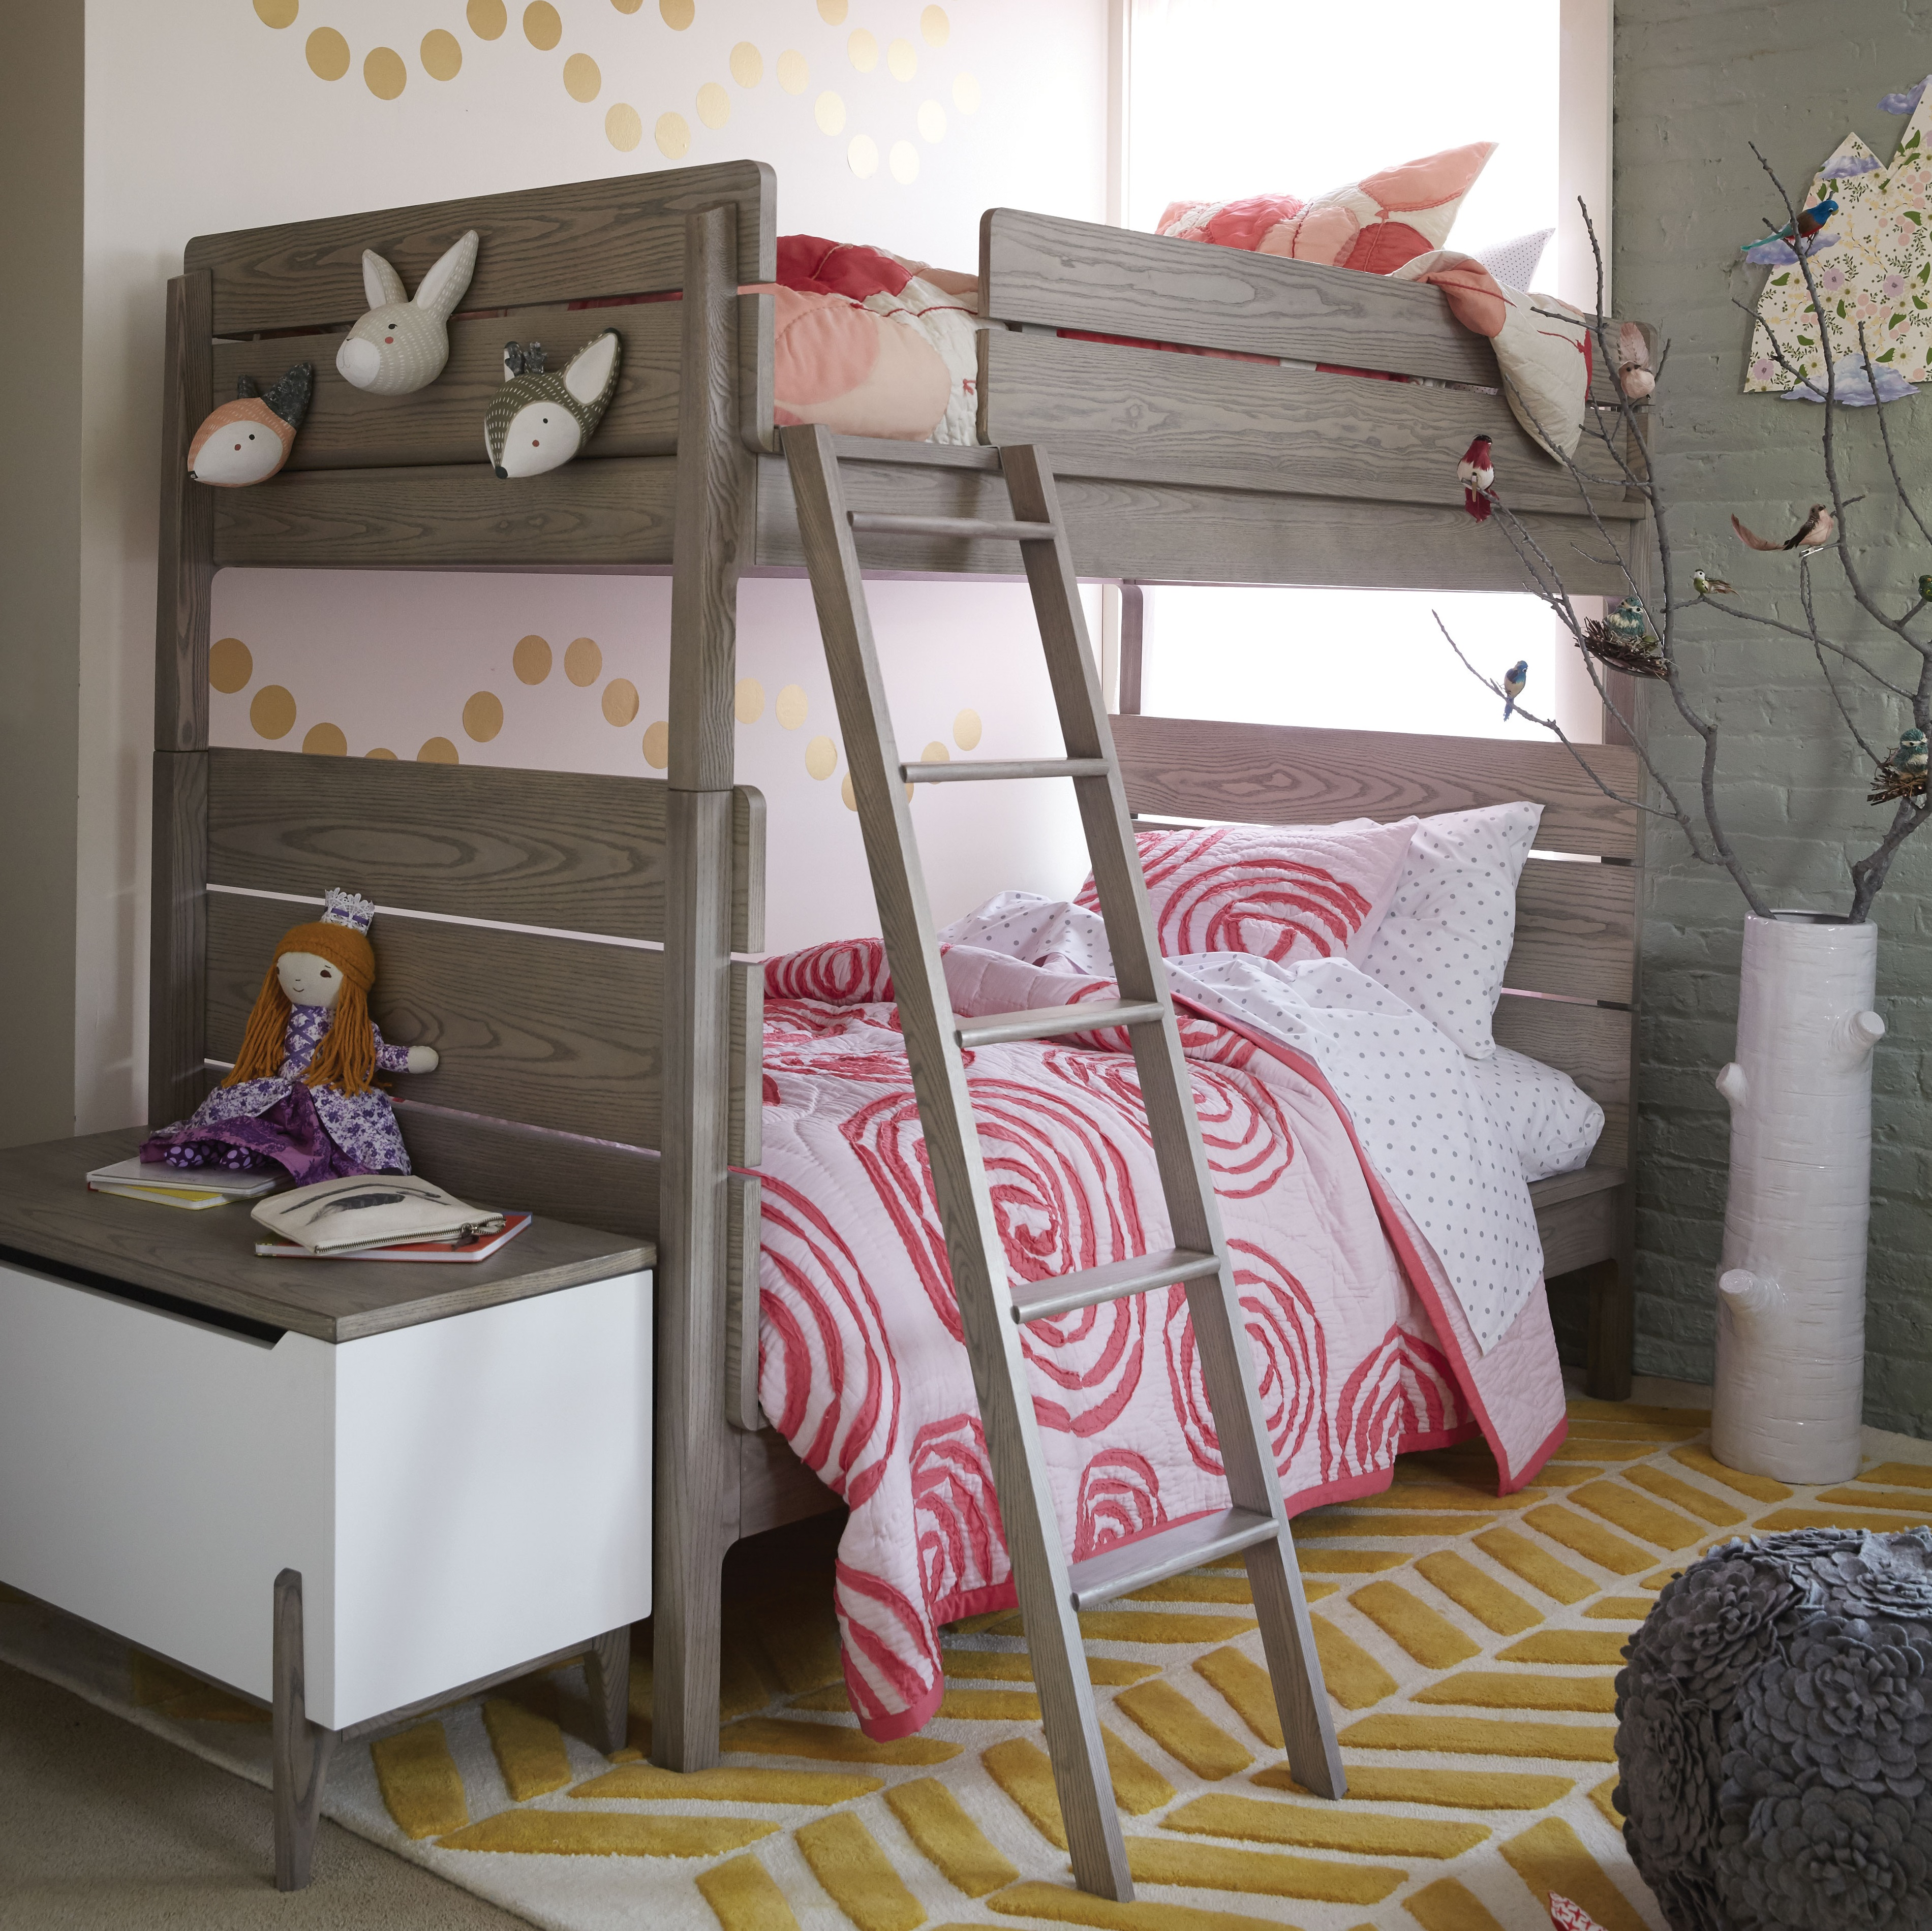 How To Style A Girls Bedroom Bunk Bed Crate Kids Blog